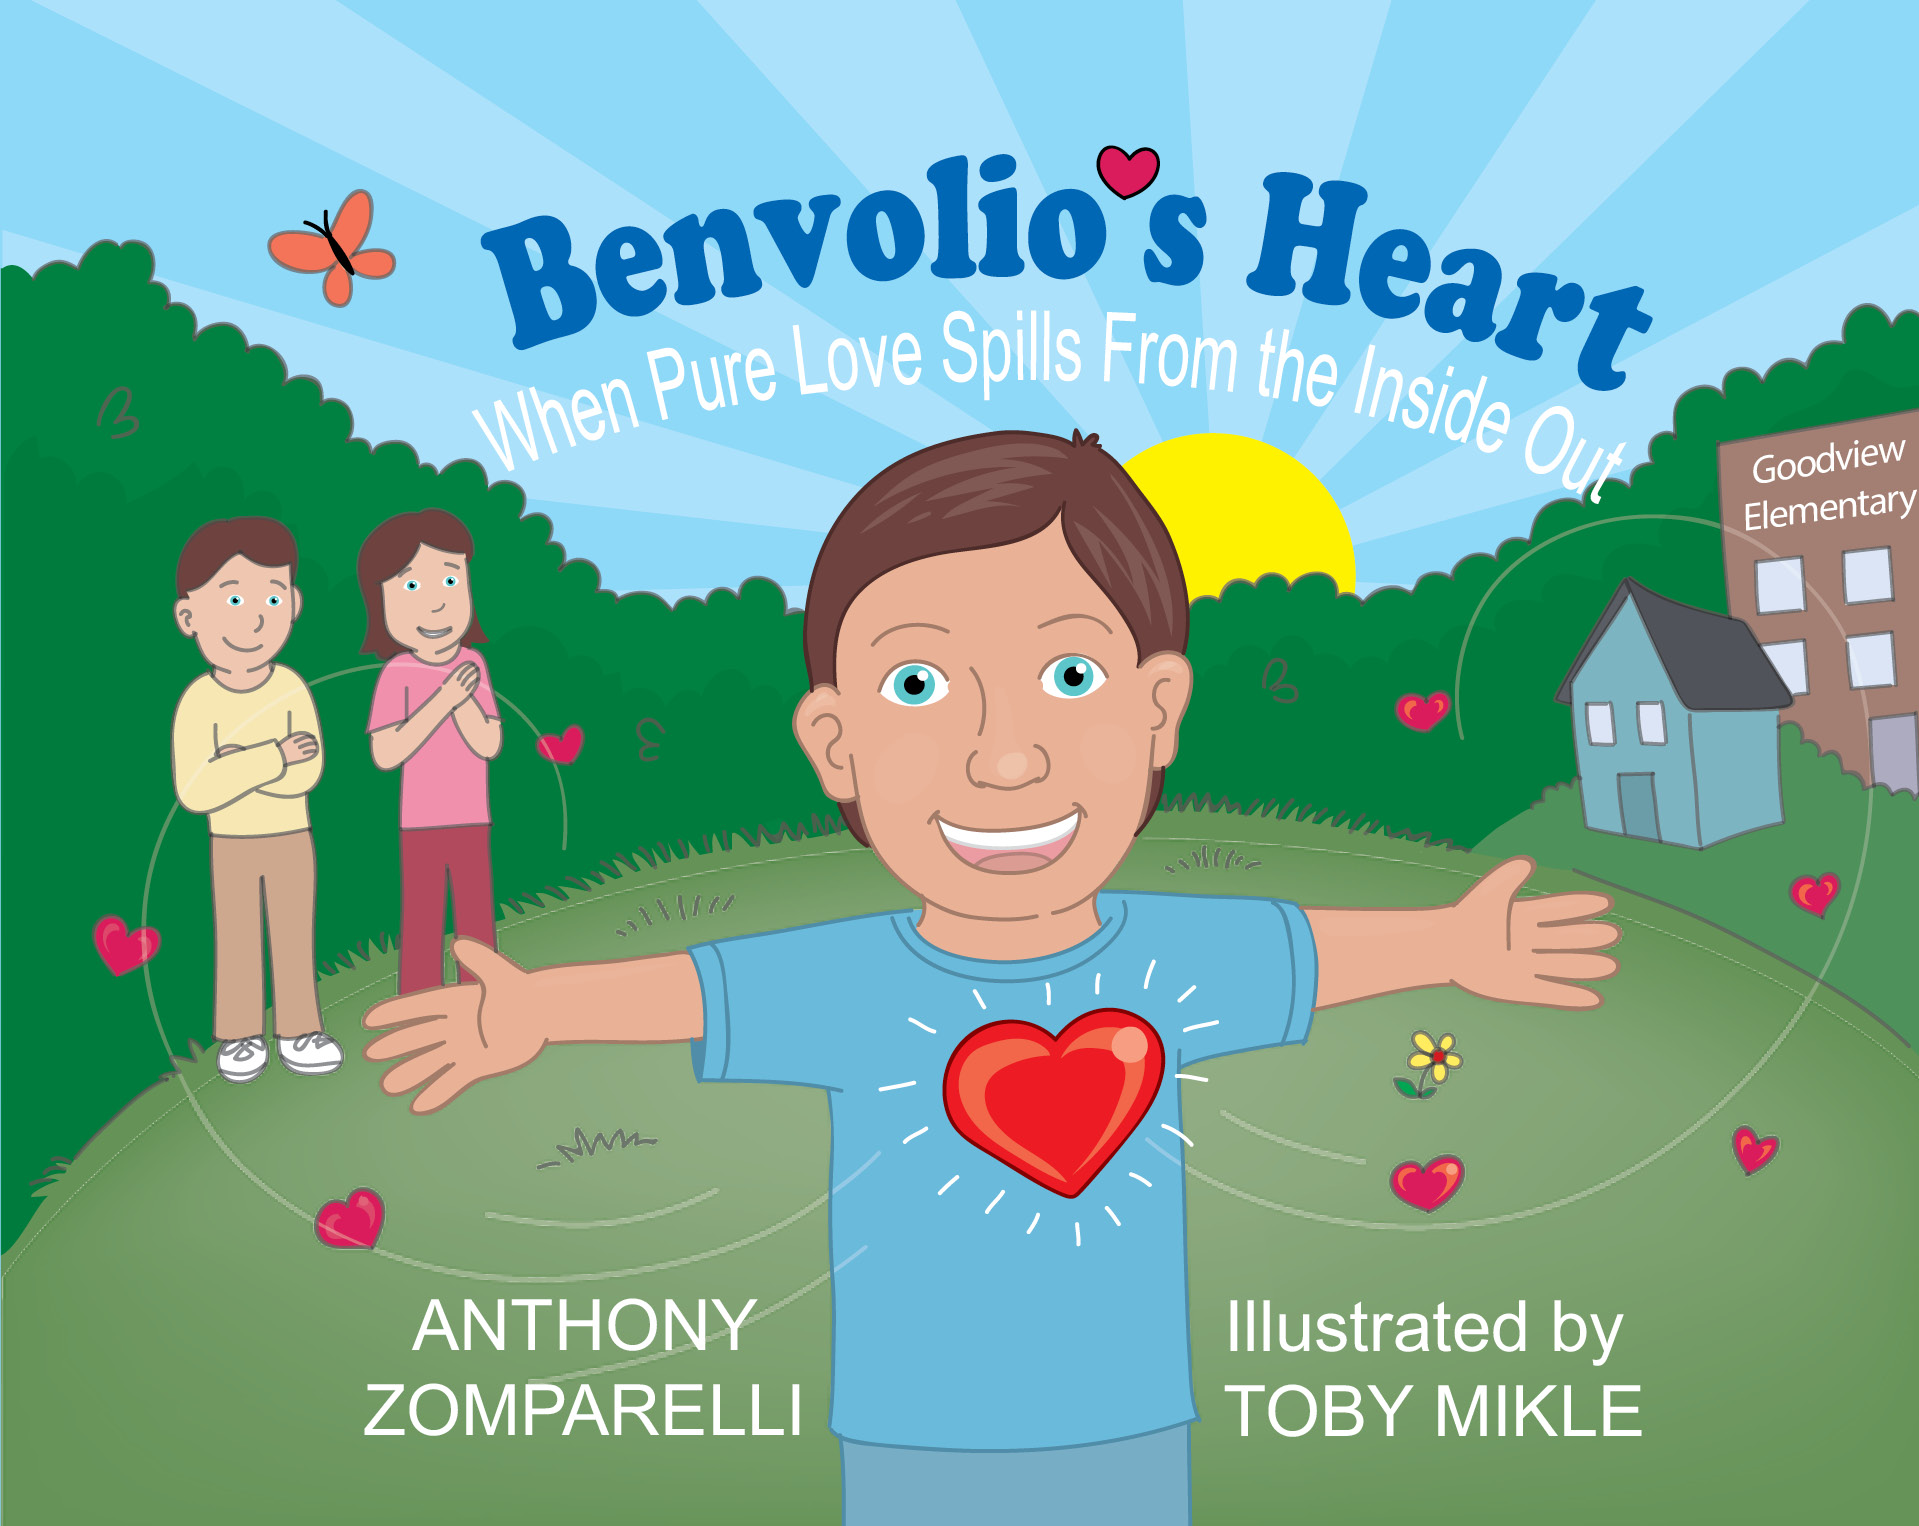 BenvoliosHeart_Amazon